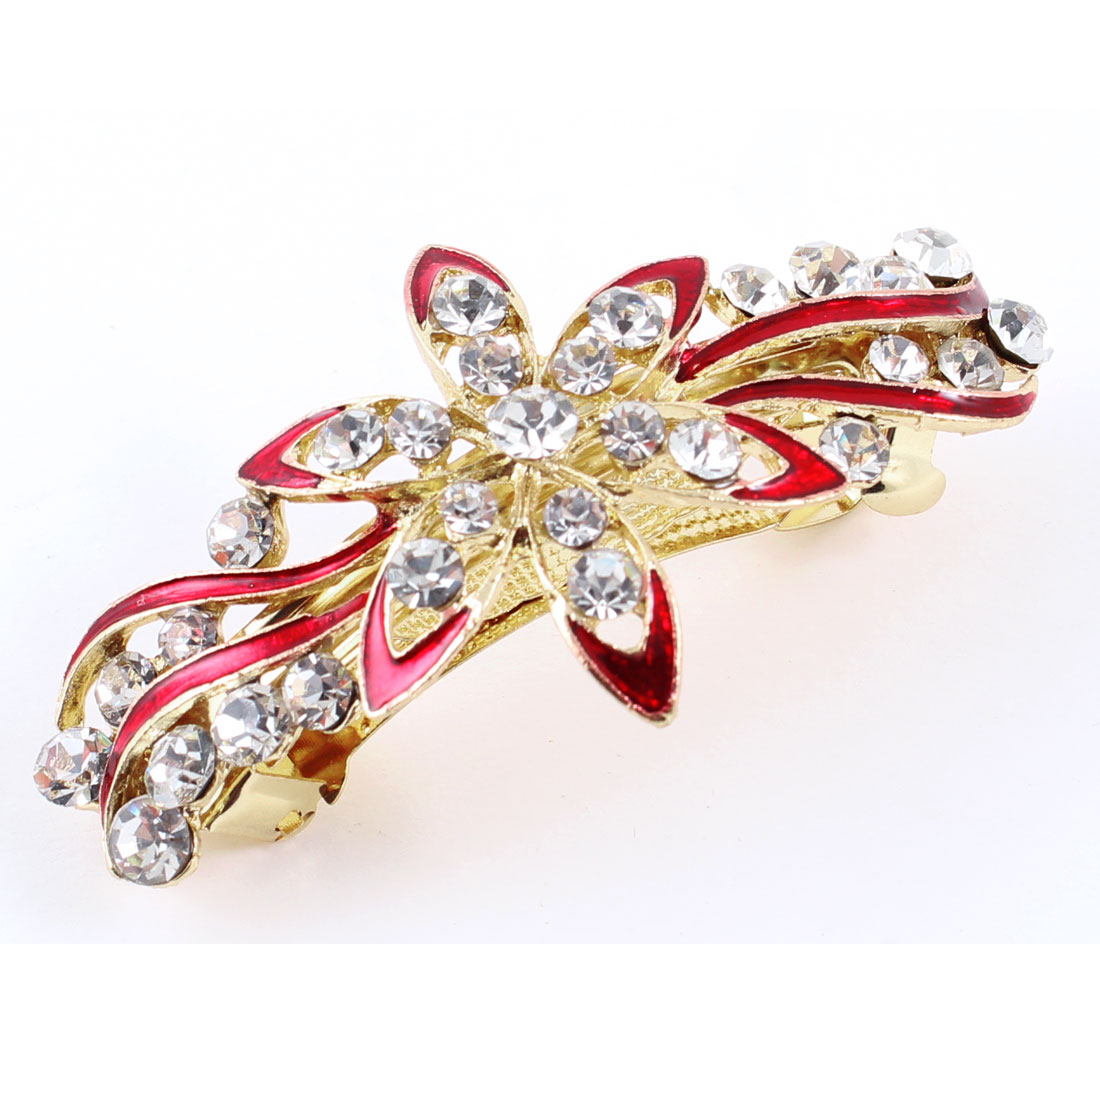 Woman Girl Red Flower Faux Rhinestone Inlaid Barrette French Hair Clip Hairpin